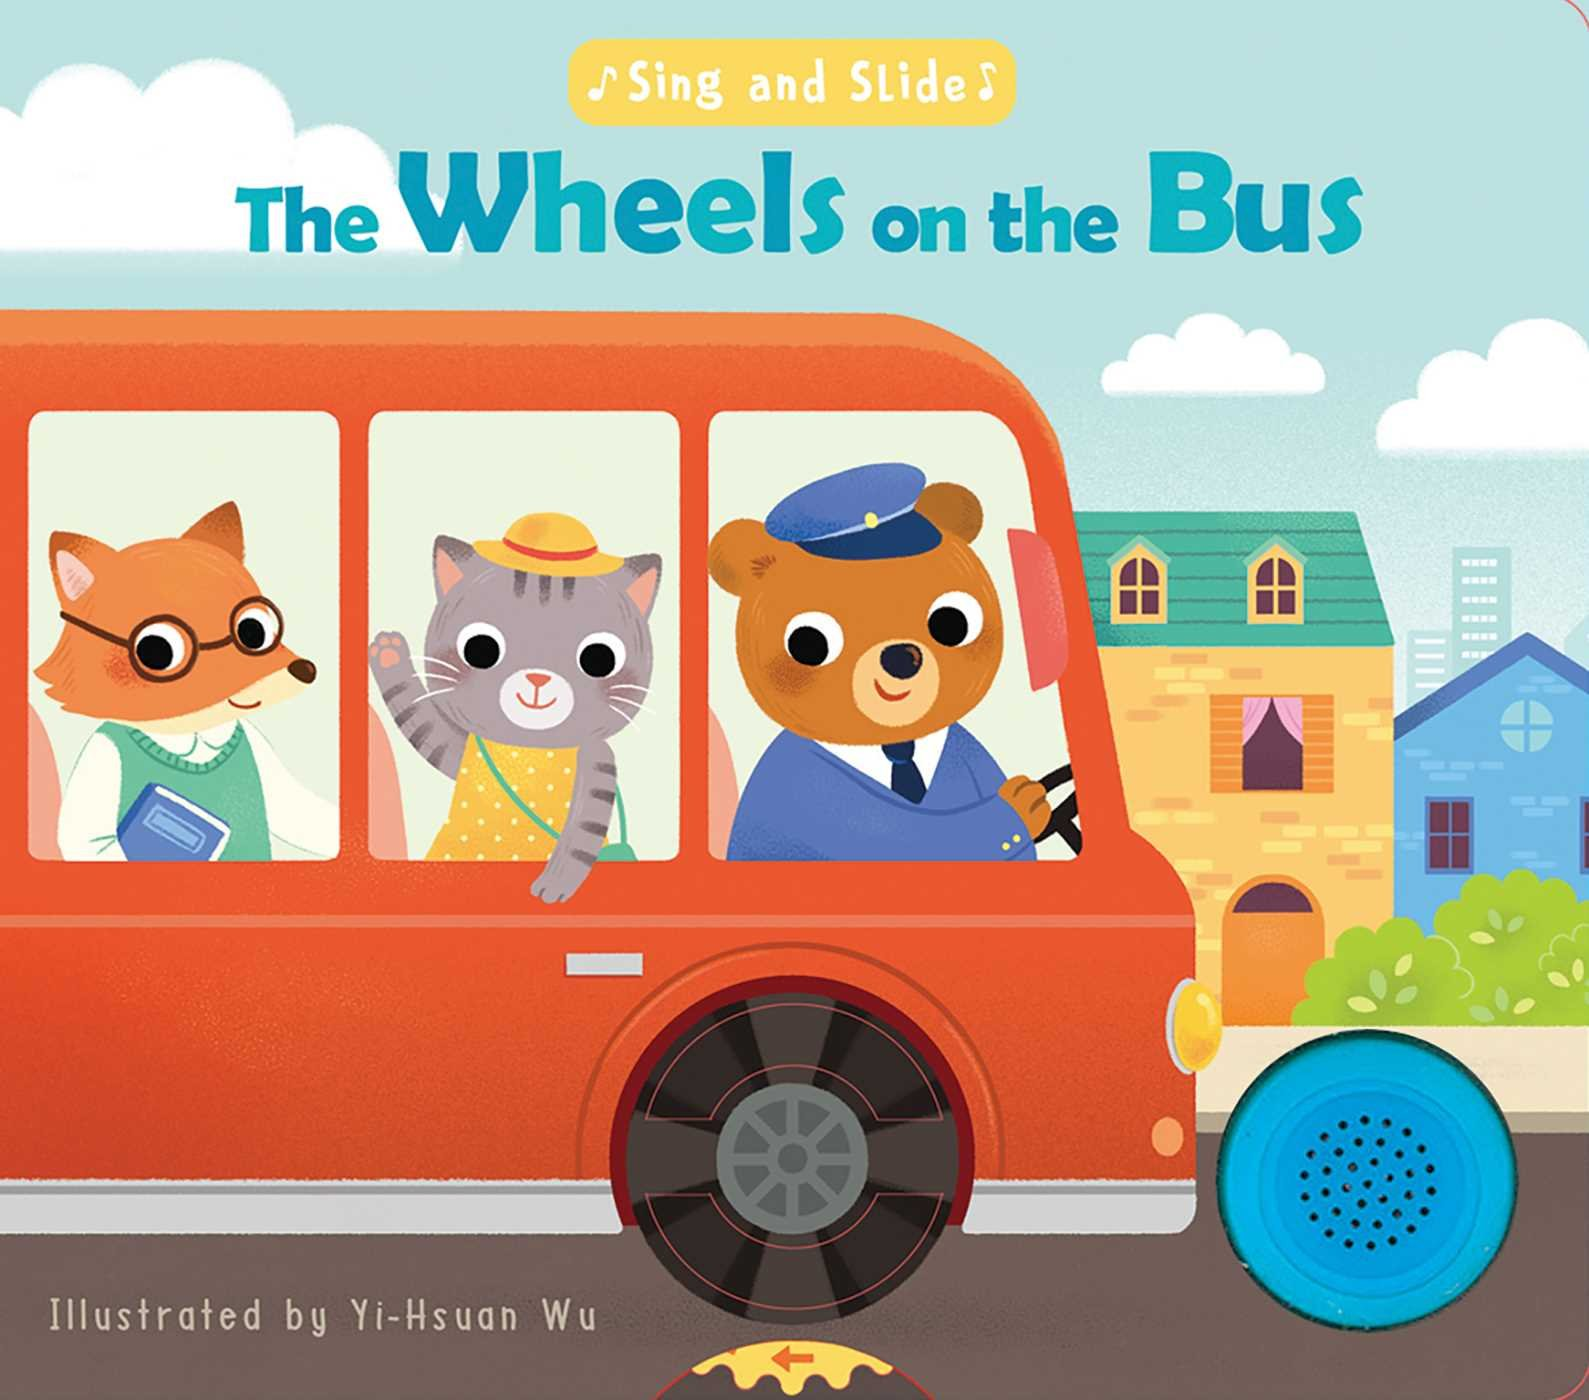 Sing and Slide: The Wheels on the Bus